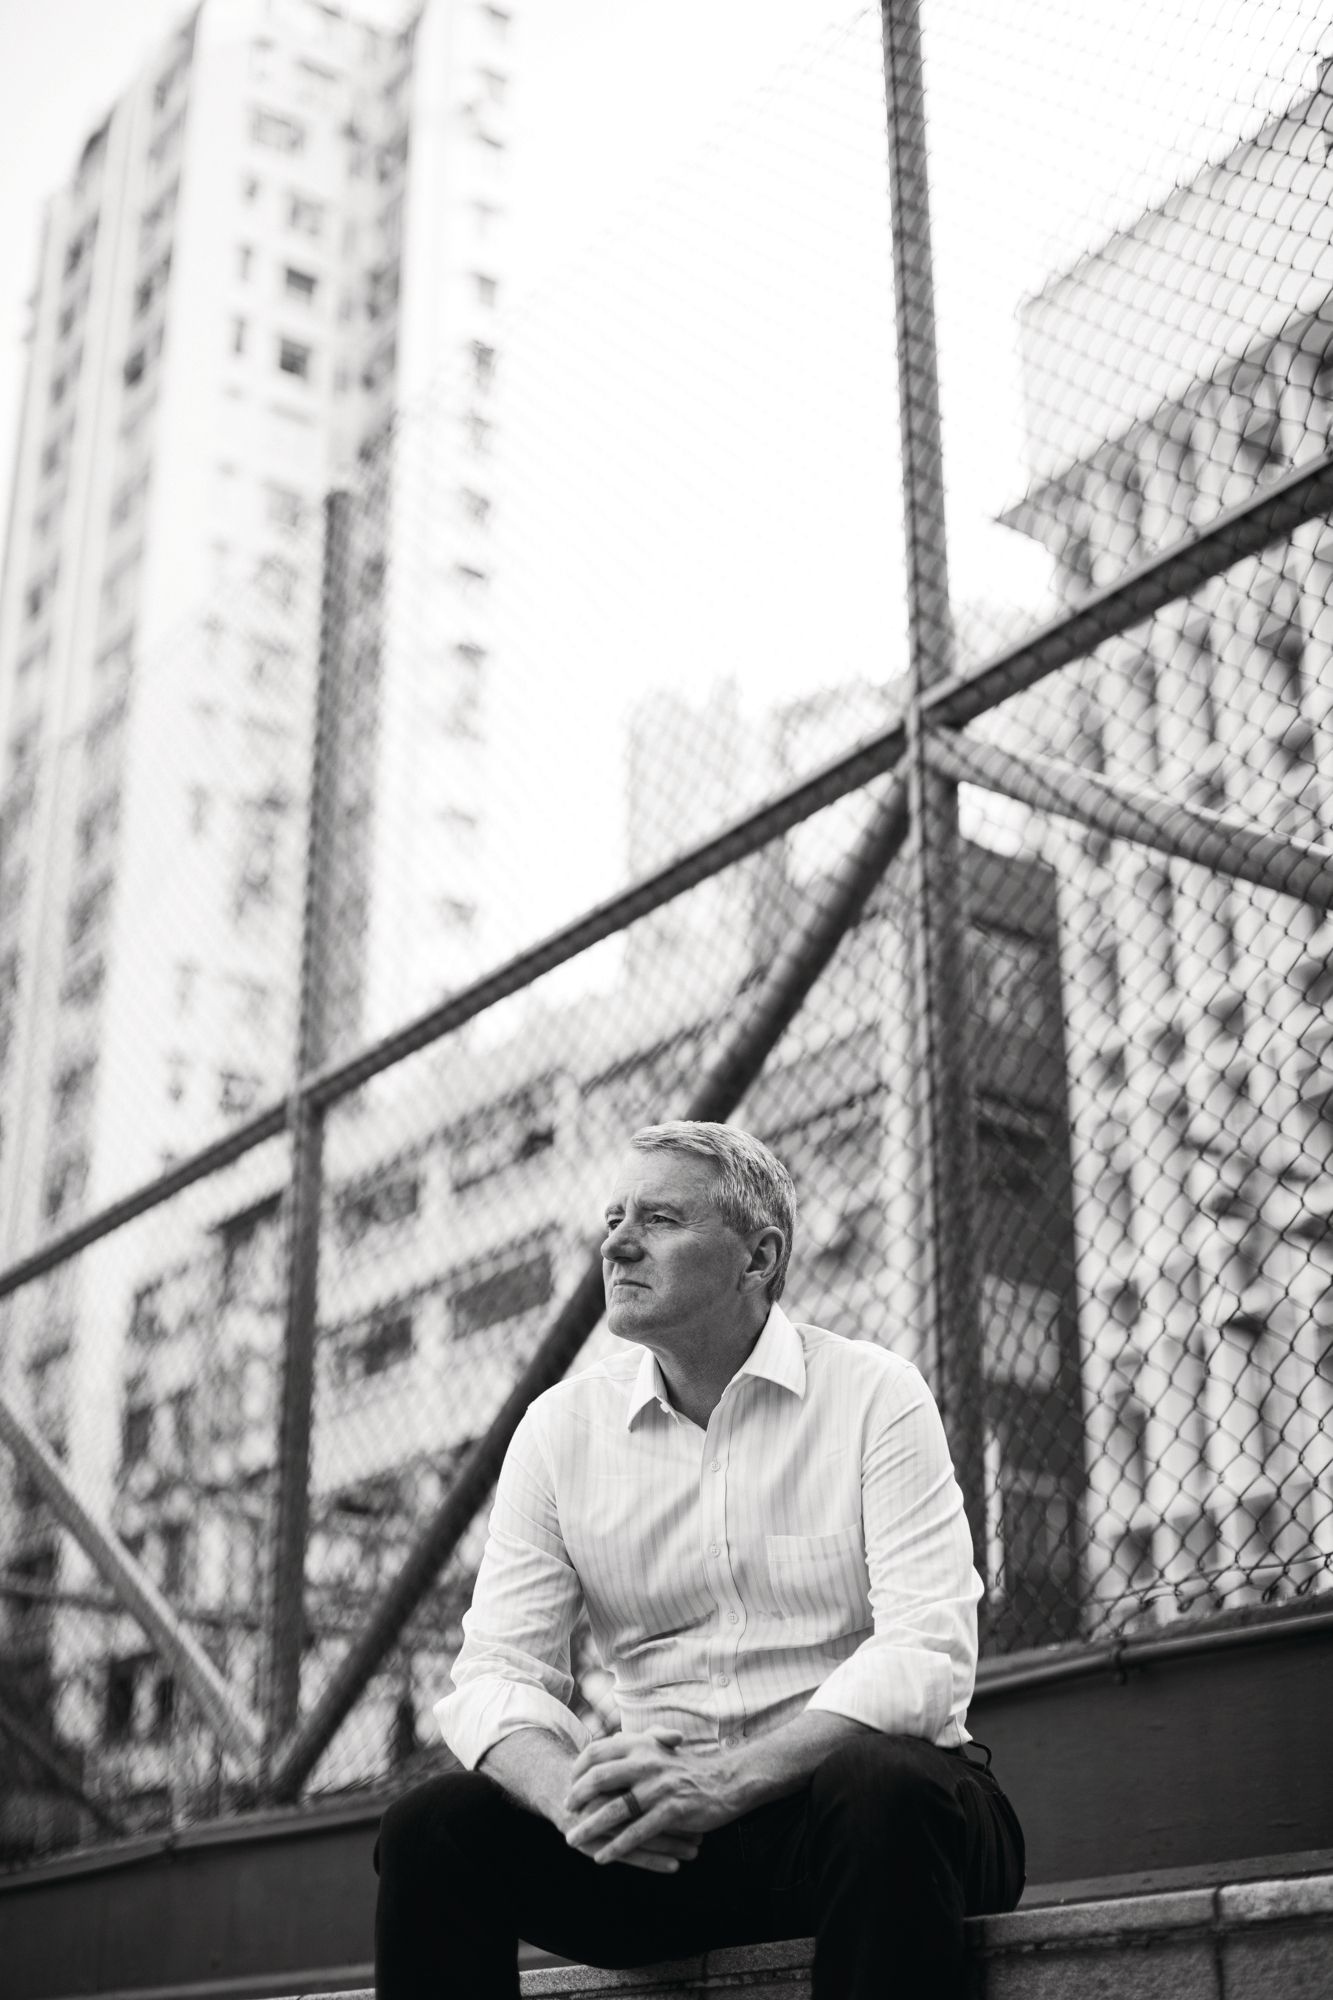 Asia's Most Influential: John Wood, Founder Of Room To Read